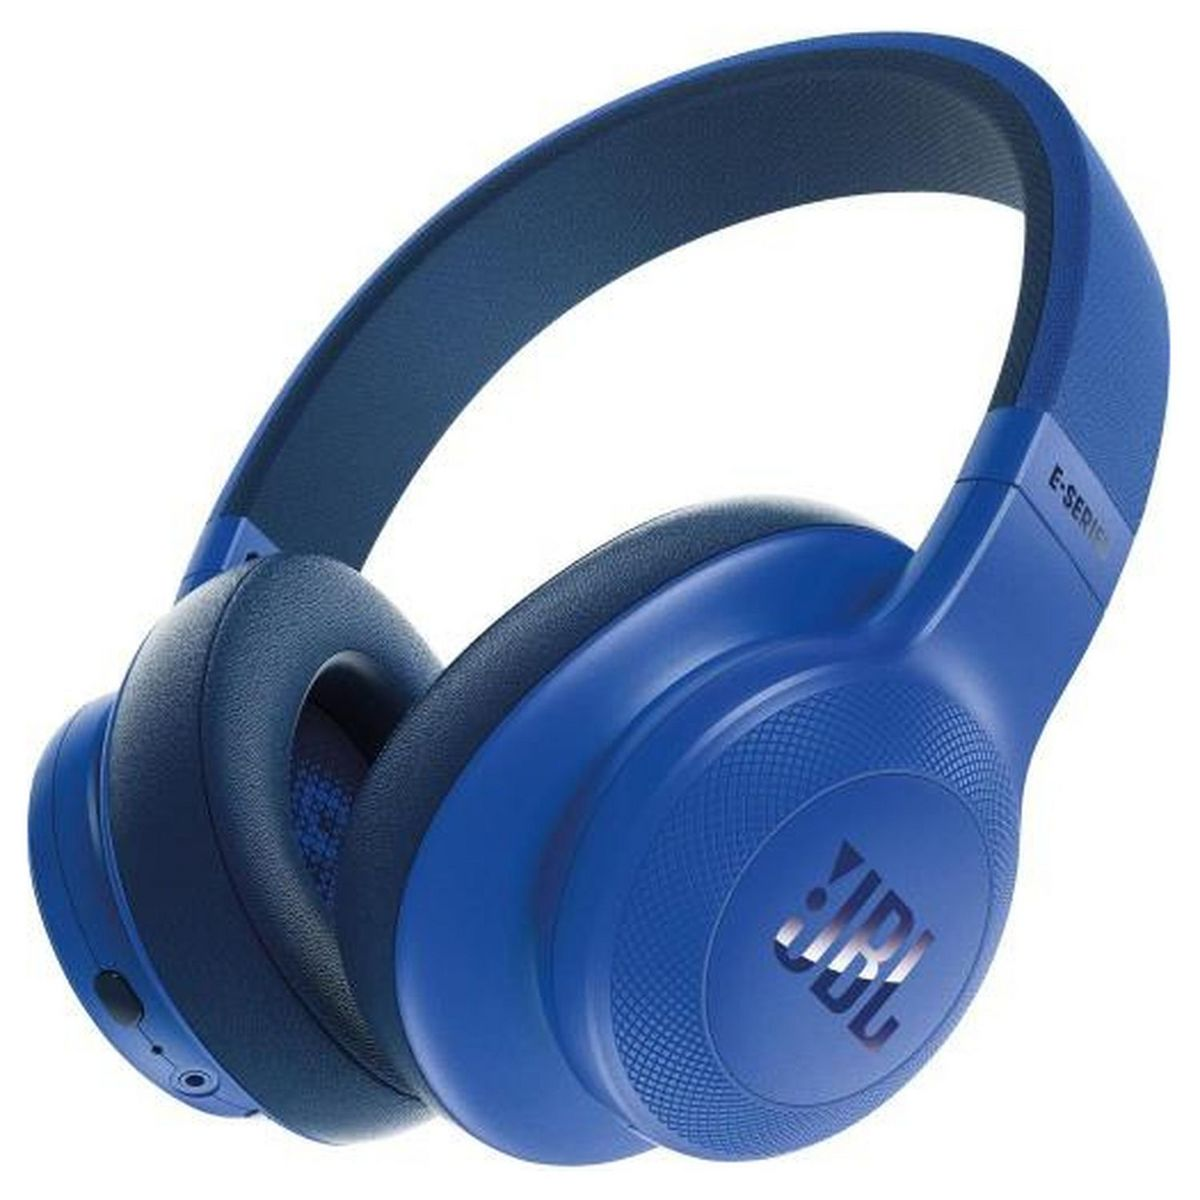 E55BT - Bleu - Casque audio sans fil